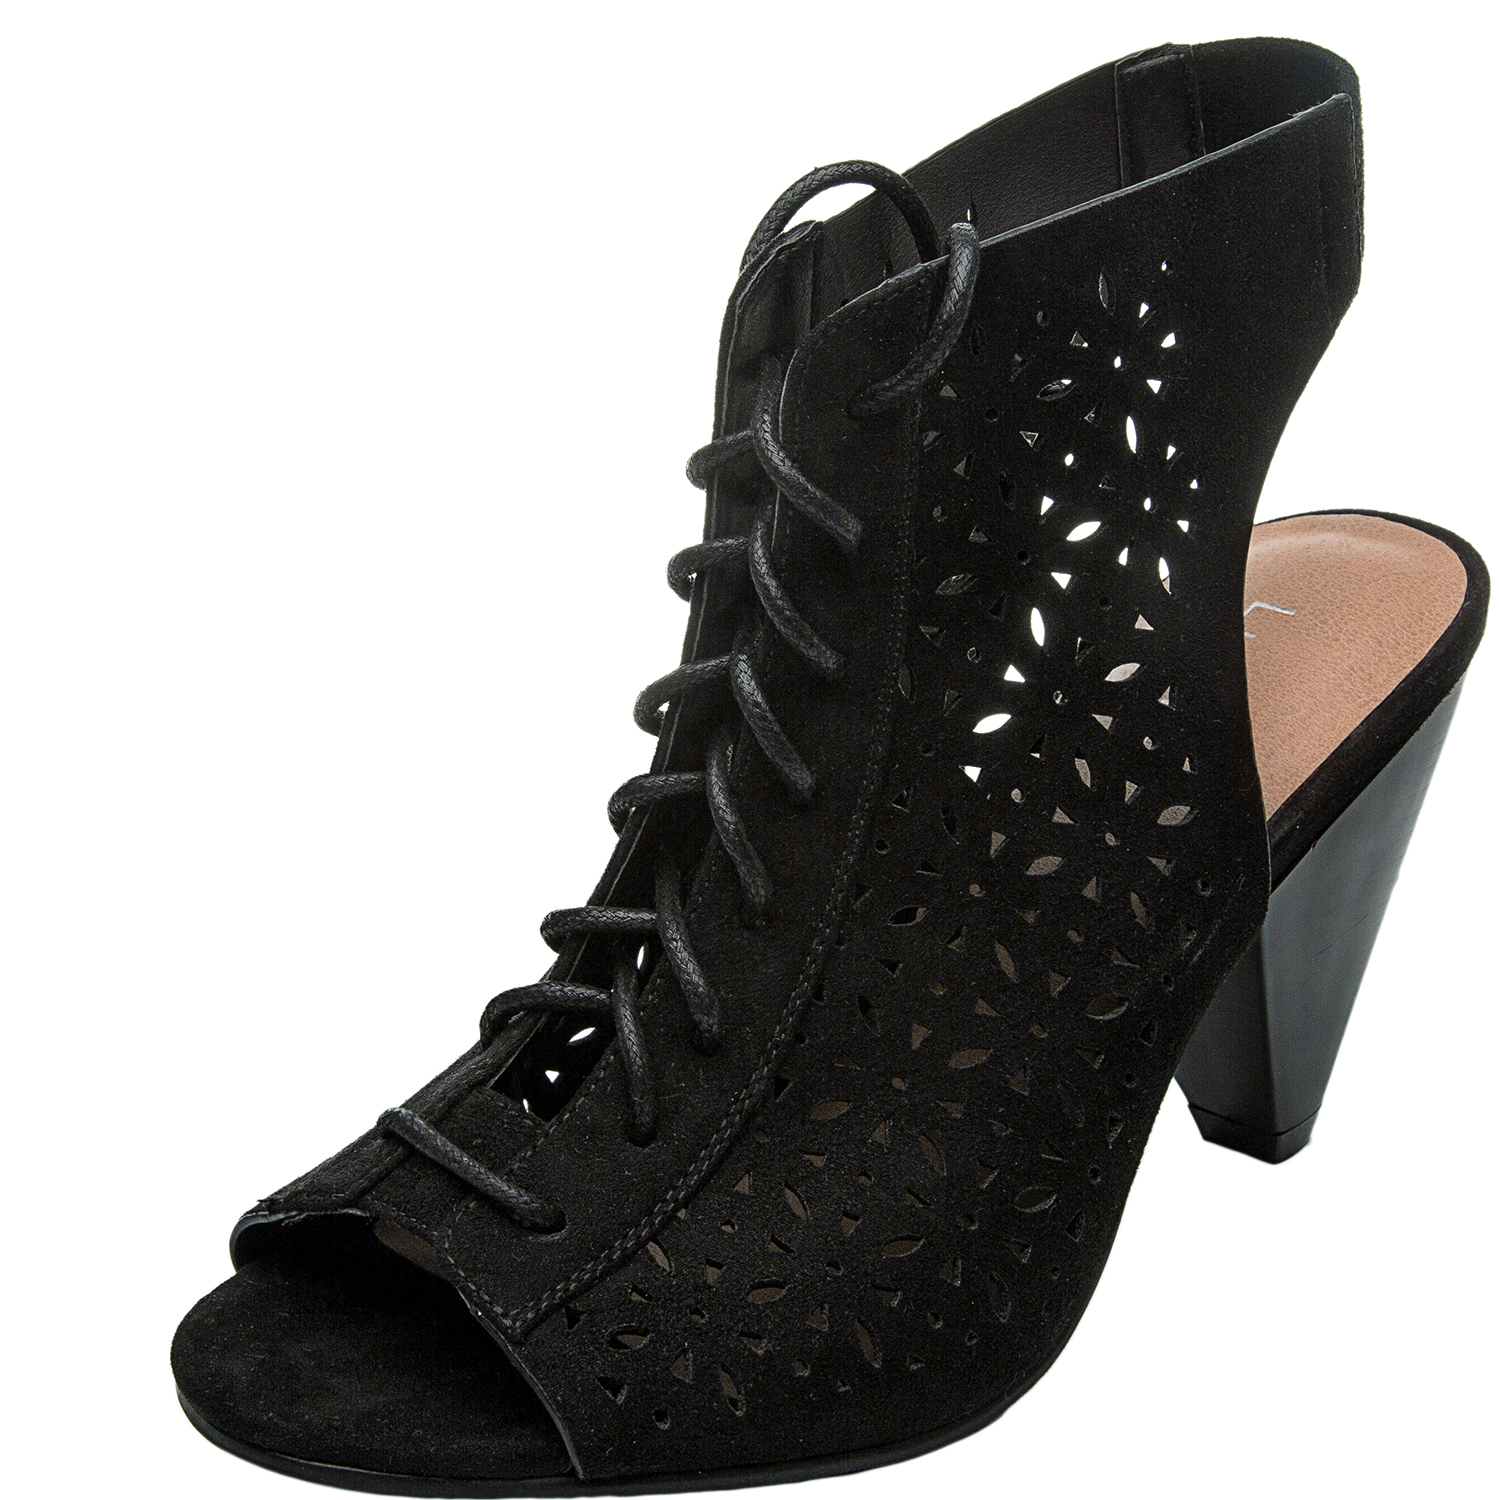 759428a76e4 Women's Wide Width Cone Heeled Sandal - Open Toe Lace up Suede Embroidery  Flower Summer Boots.